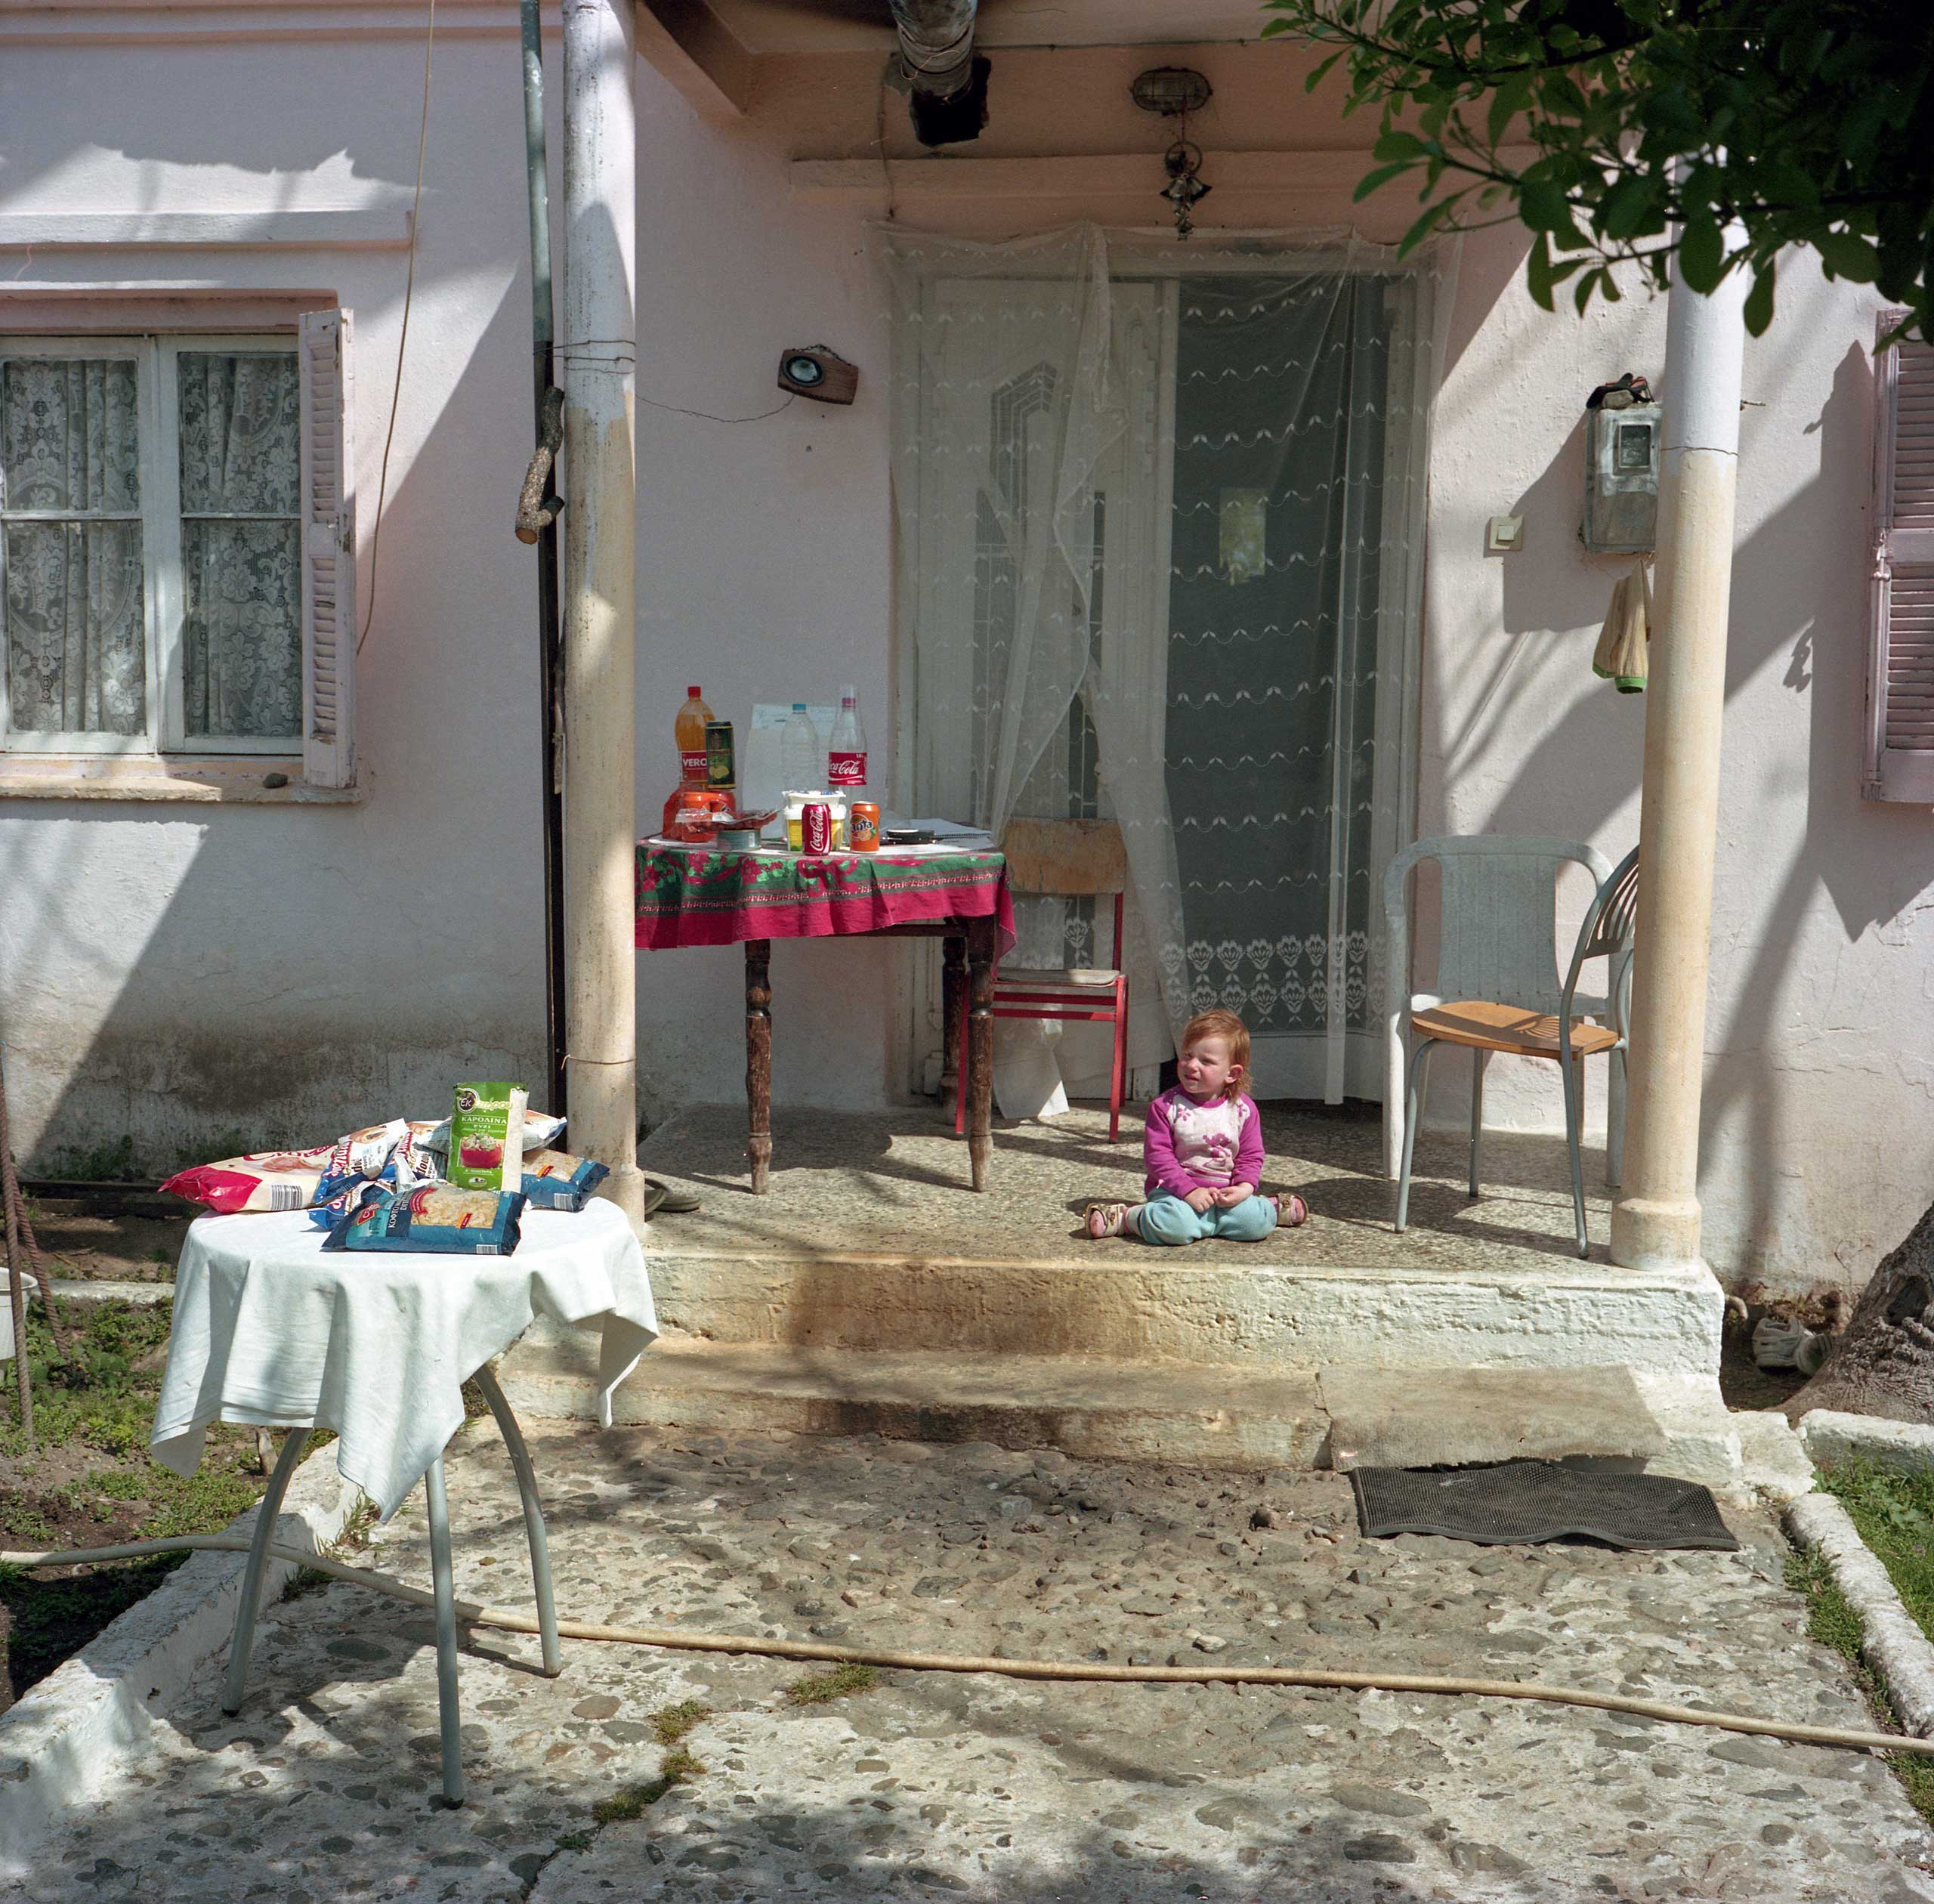 Packaged food and snacks for sale in the courtyard of an Albanian family that had come to Idomeni, Greece as refugees 25 years ago. The family members sell food and drinks to the refugees from the porch of their home. Idomeni, Greece. April 2016.